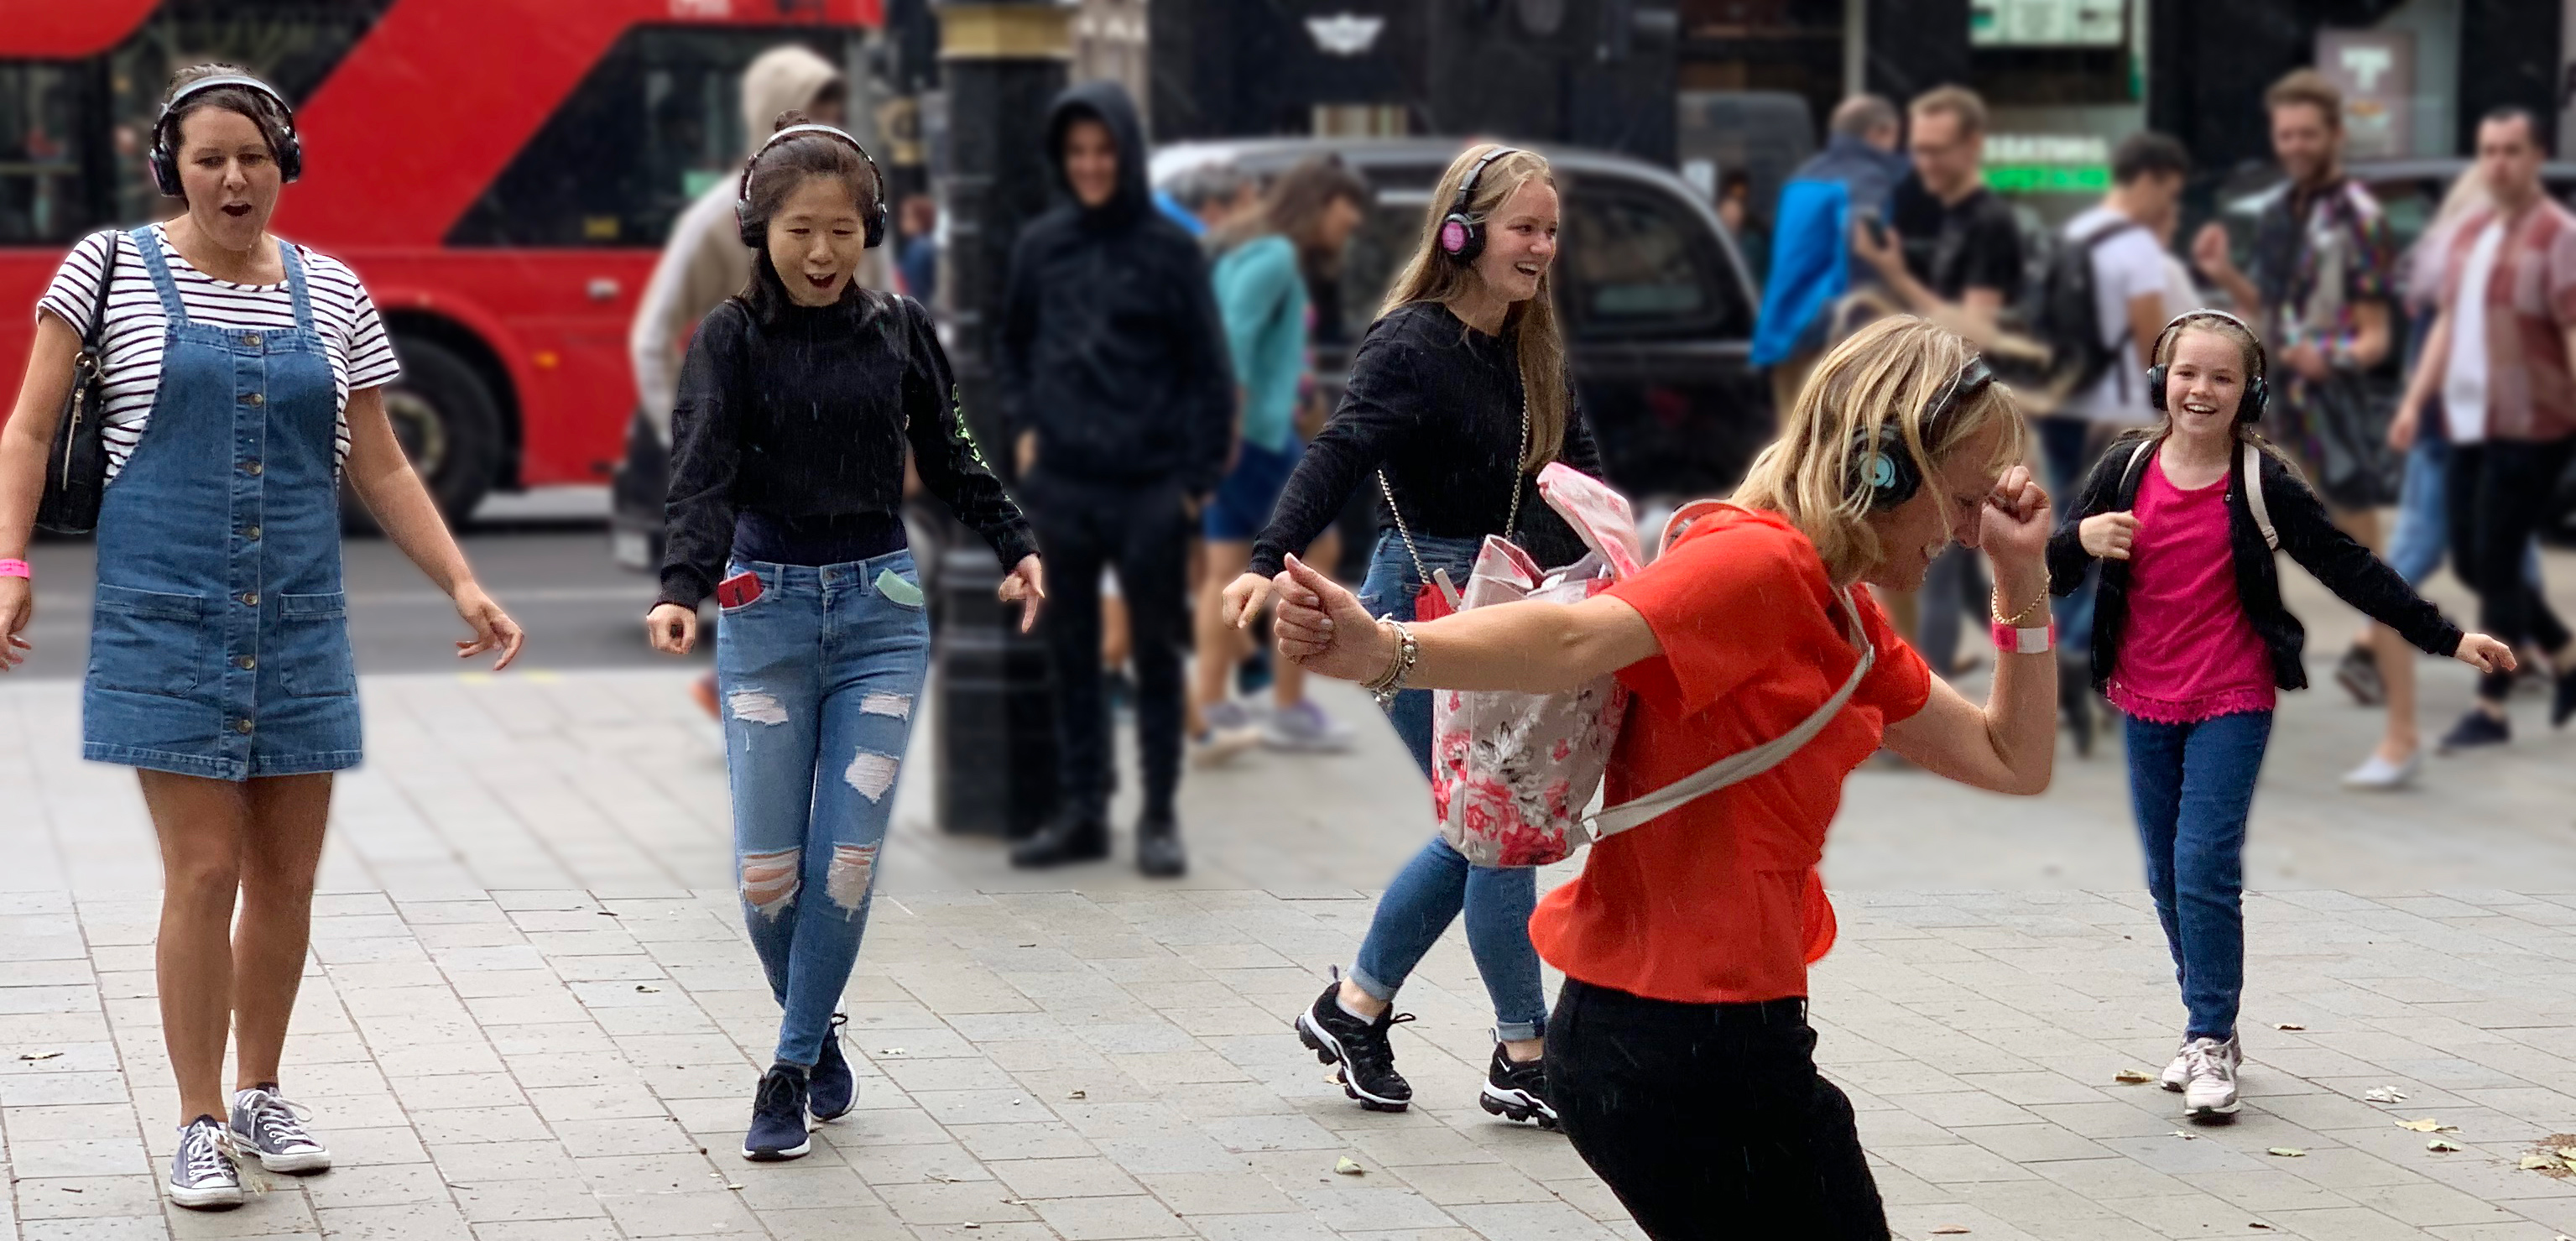 West End Musical Tour Silent Disco Walking Tour #silenttours